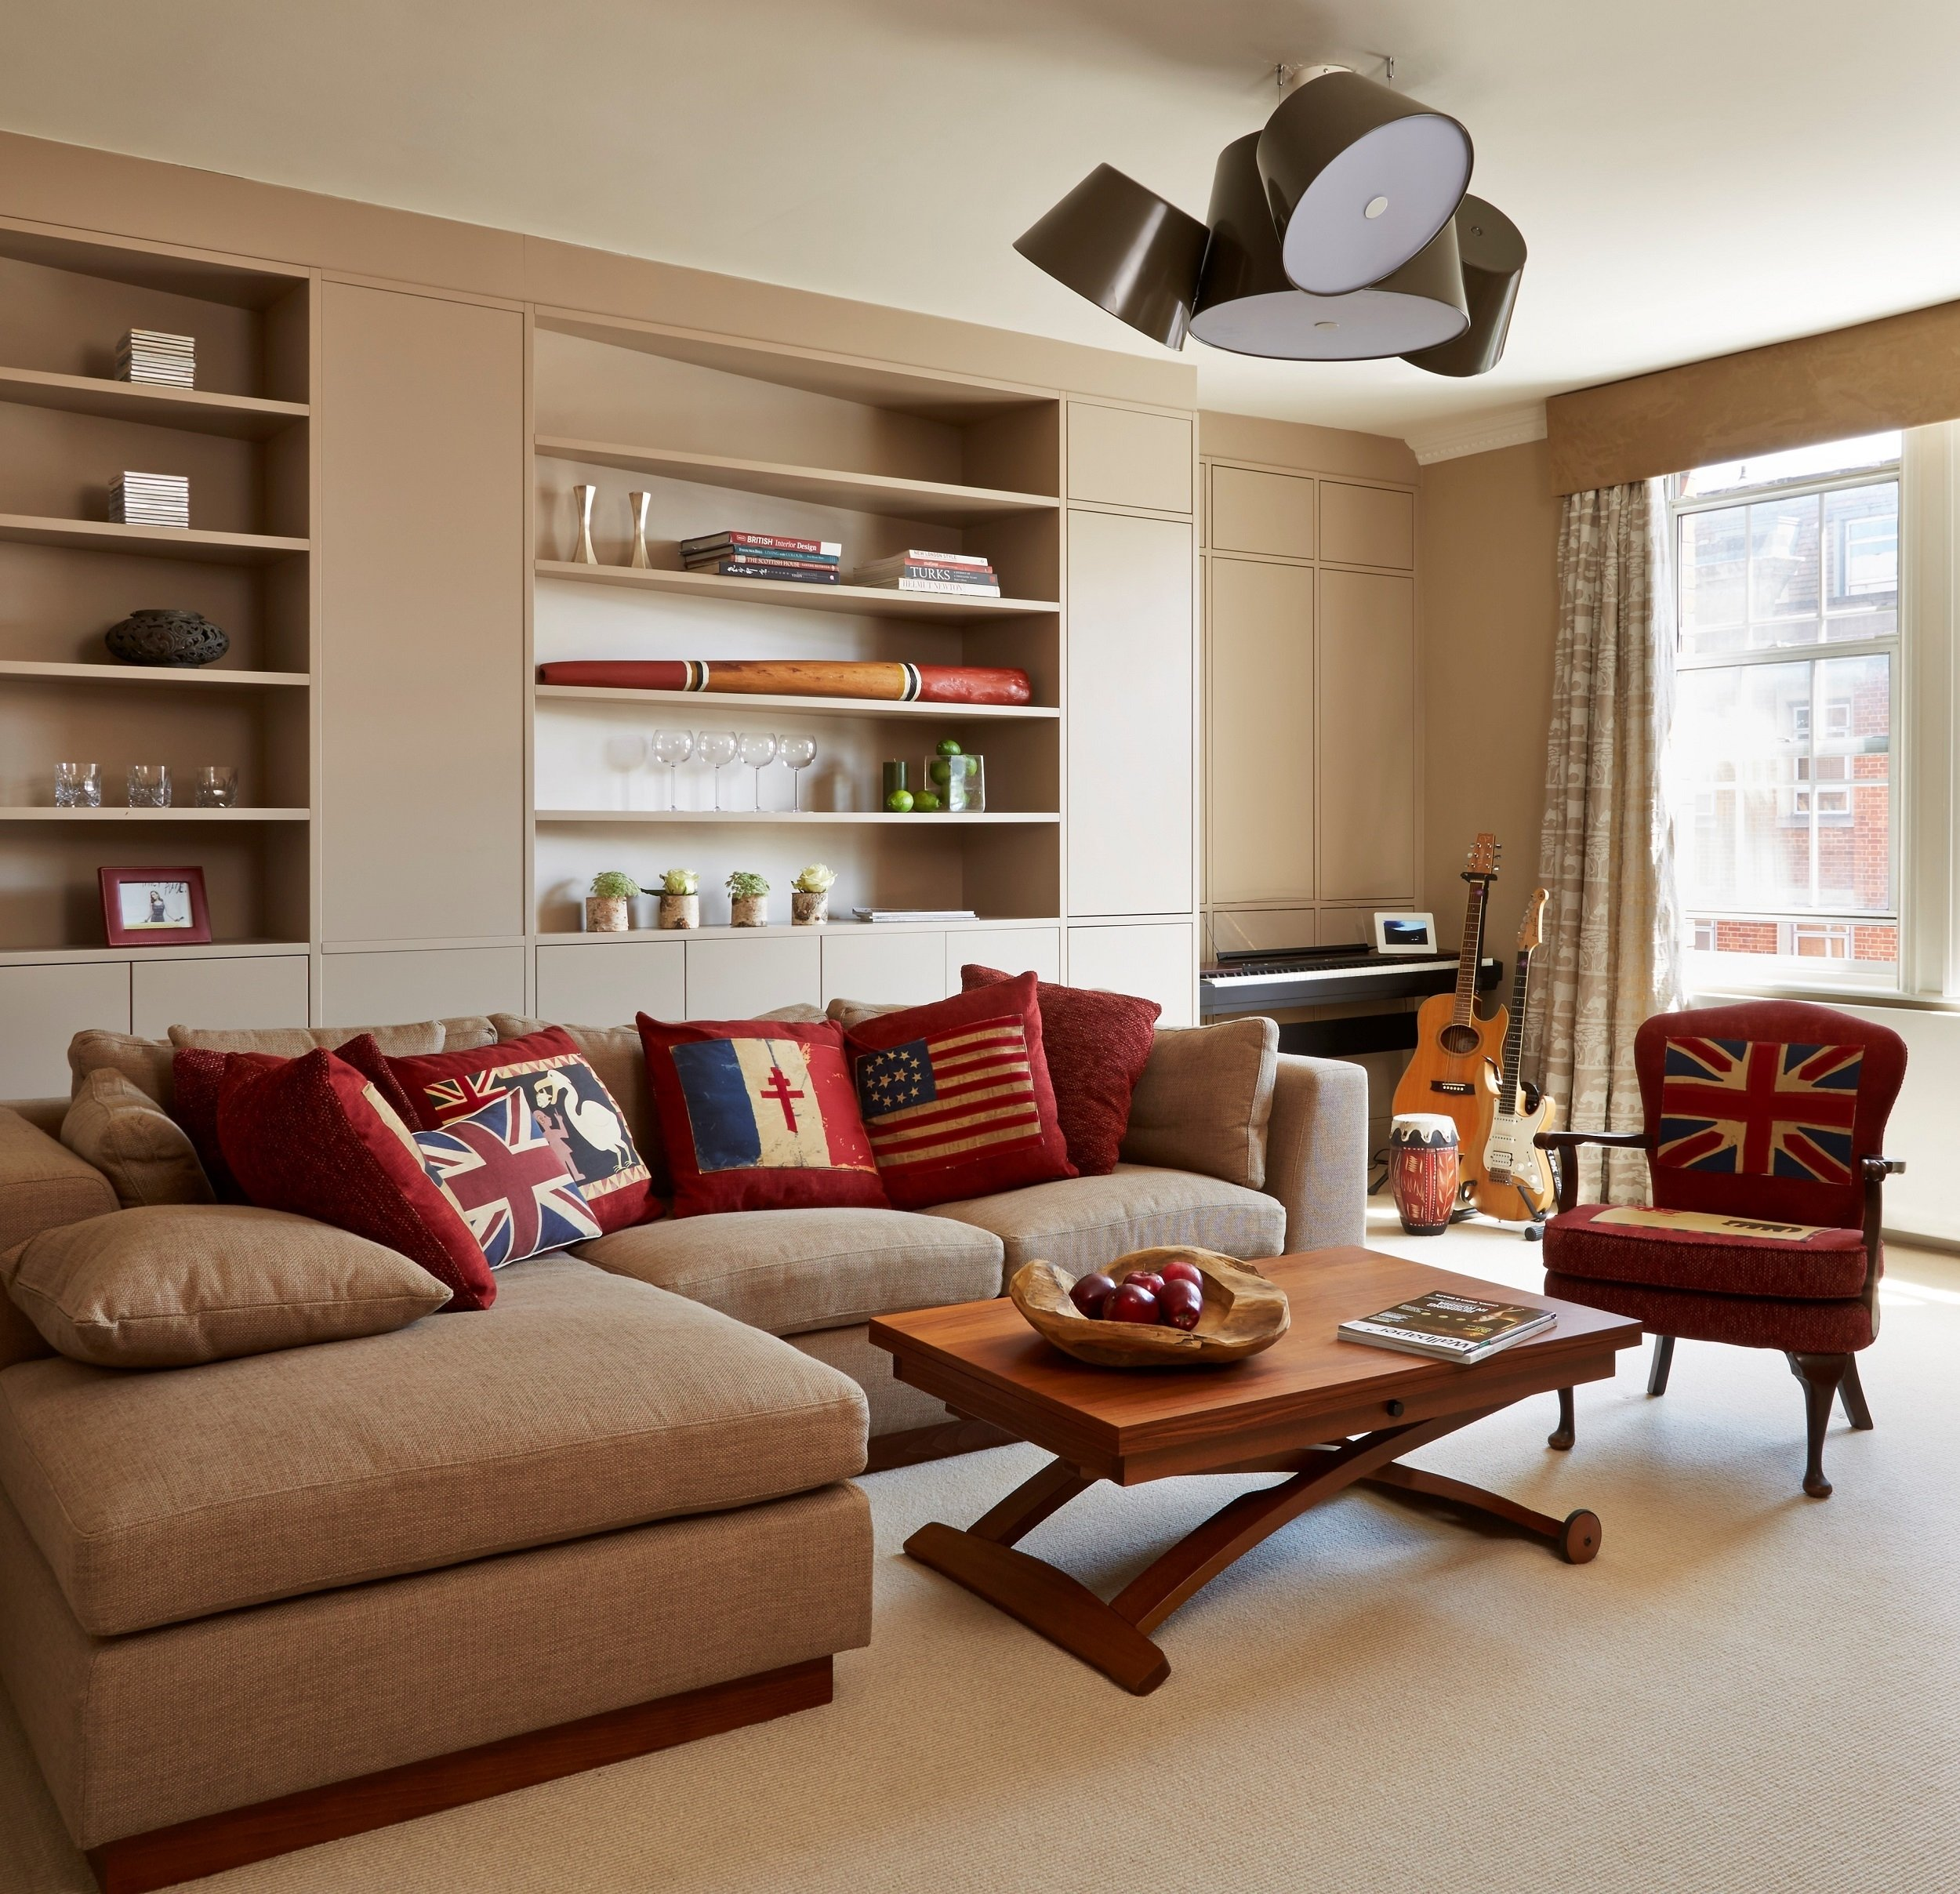 10 Attractive Ideas For Living Room Decor 53 inspirational living room decor ideas the luxpad 4 2020